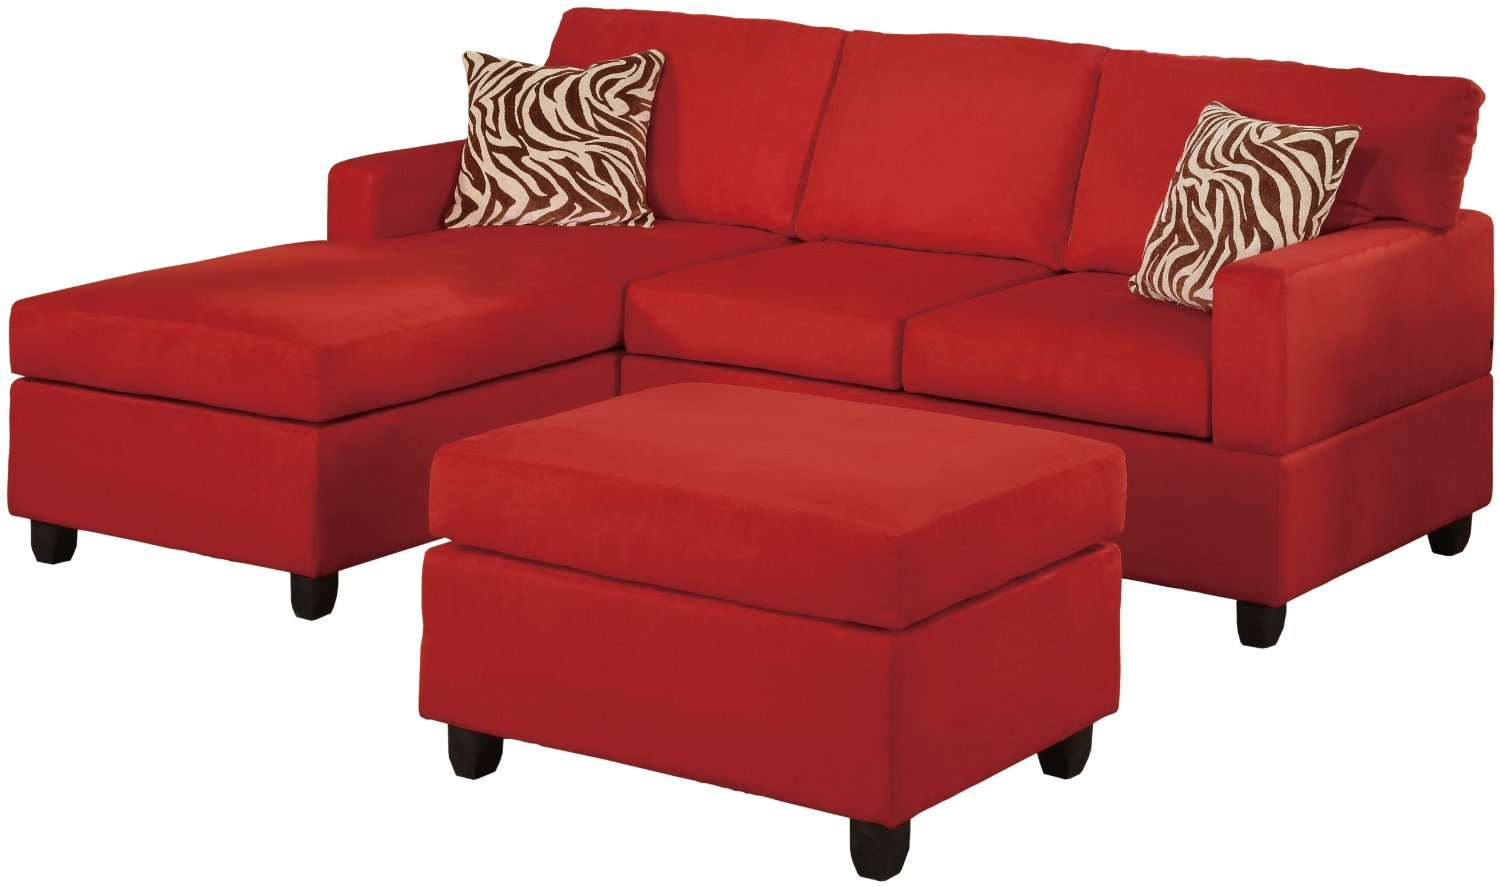 Microfiber sectional sofa set 3 piece red reversible for 3 piece microfiber sectional sofa with chaise